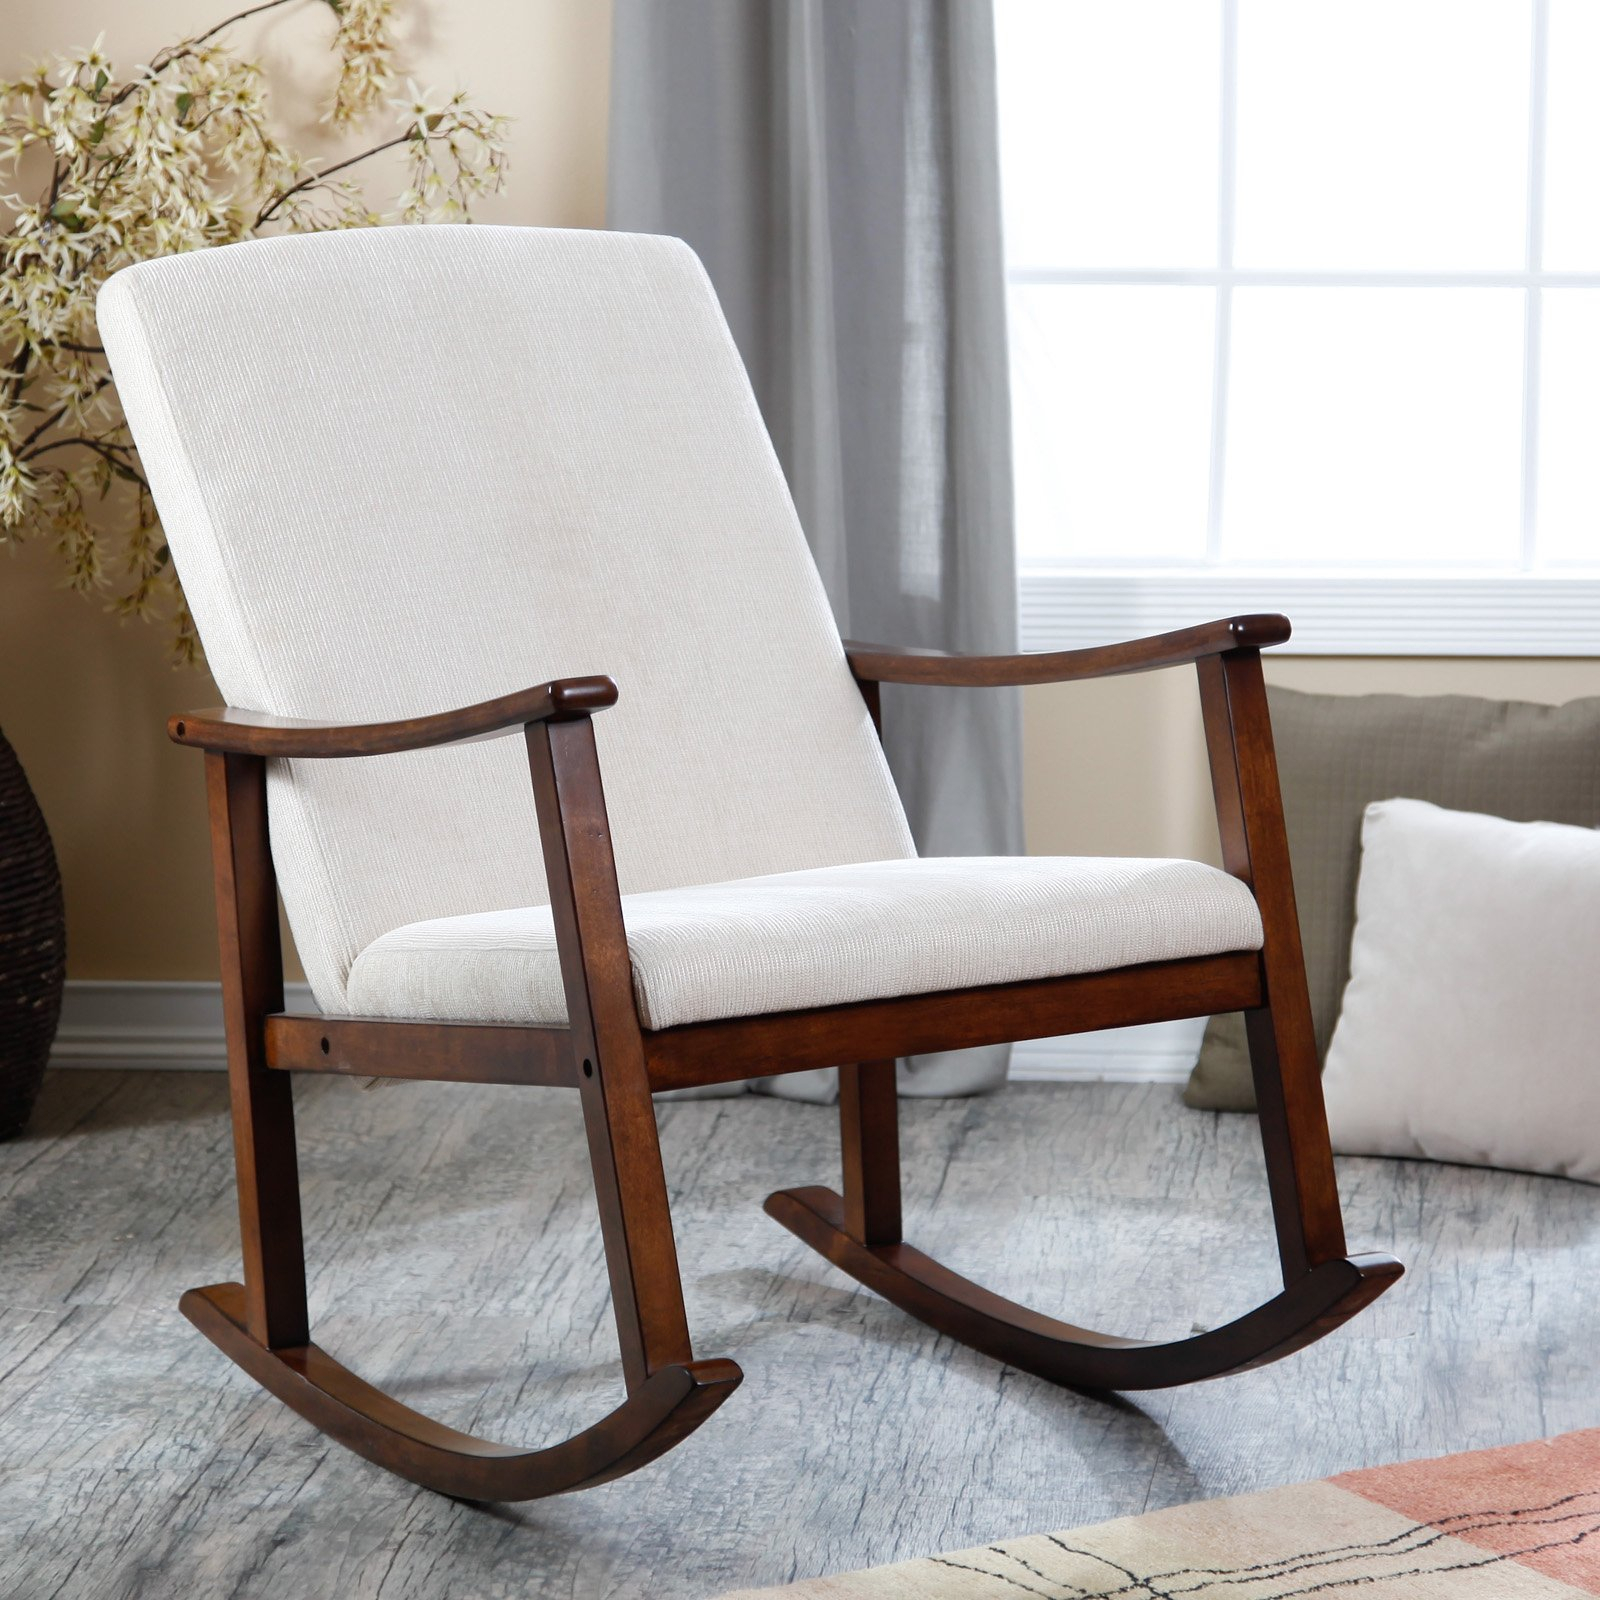 Furniture: Interesting Lowes Rocking Chairs For Home Within Wooden Rocking Chairs With Fabric Upholstered Cushions, White (View 9 of 20)